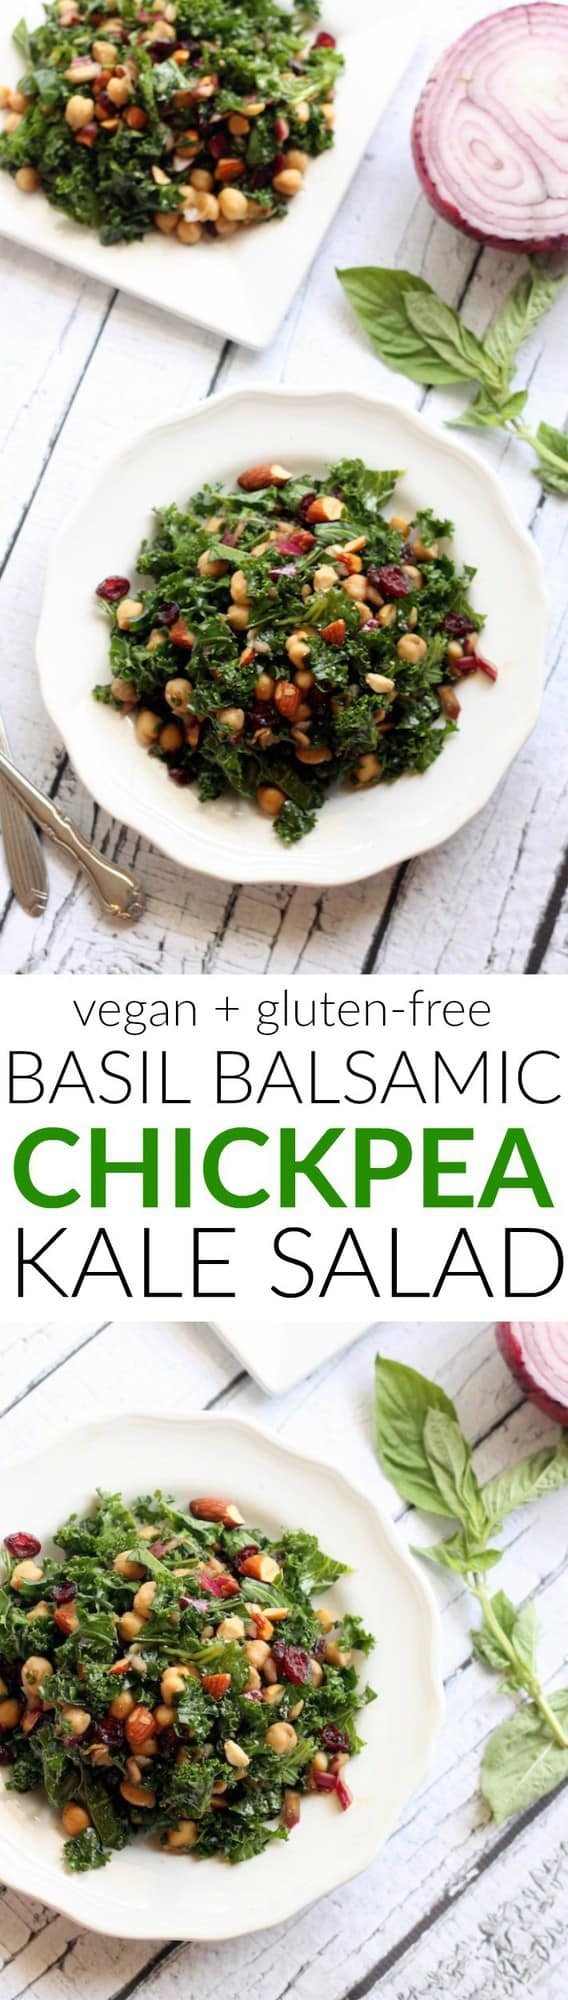 A quick, healthy, and flavorful kale salad with protein-packed chickpeas, fresh basil, and crunchy almonds. Perfect for a light summer dinner! Vegan and gluten-free!